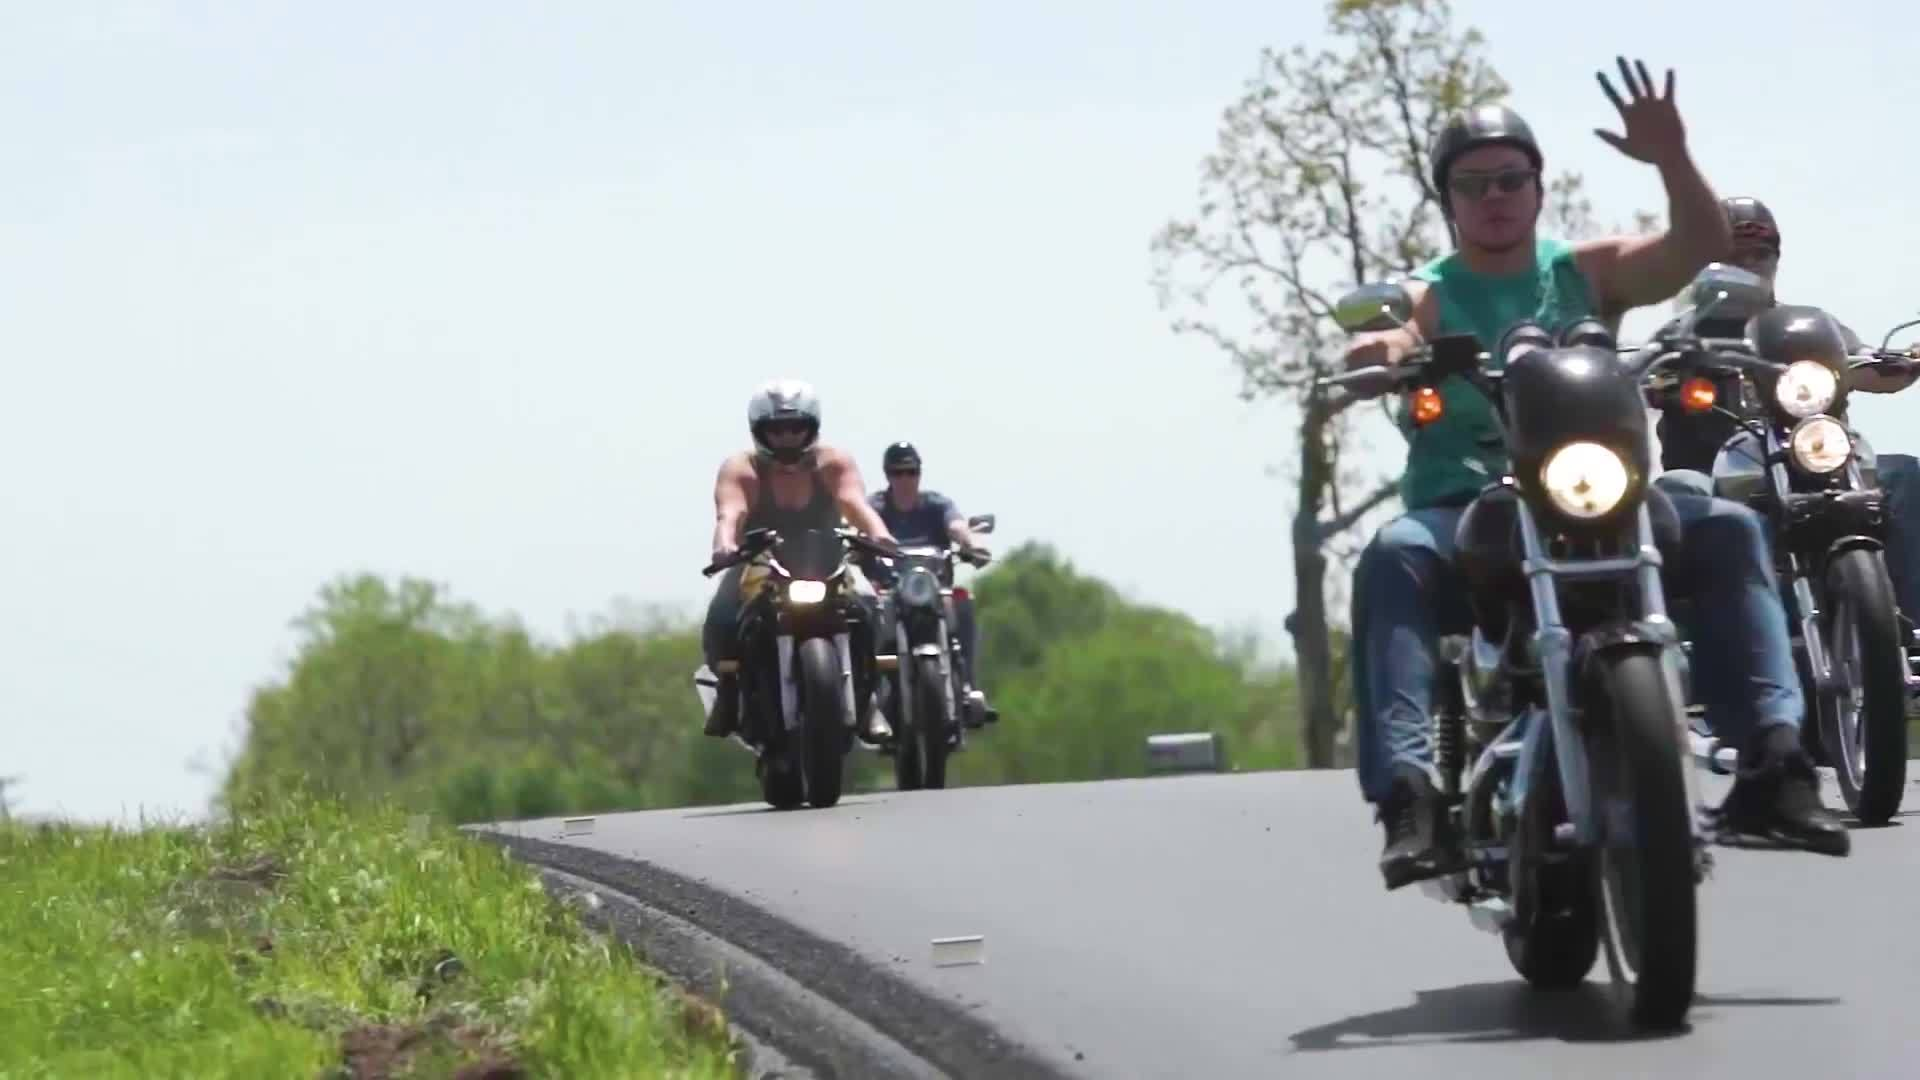 David Ransin hosts the 12th annual Motorcycle Awareness Ride this Sunday.